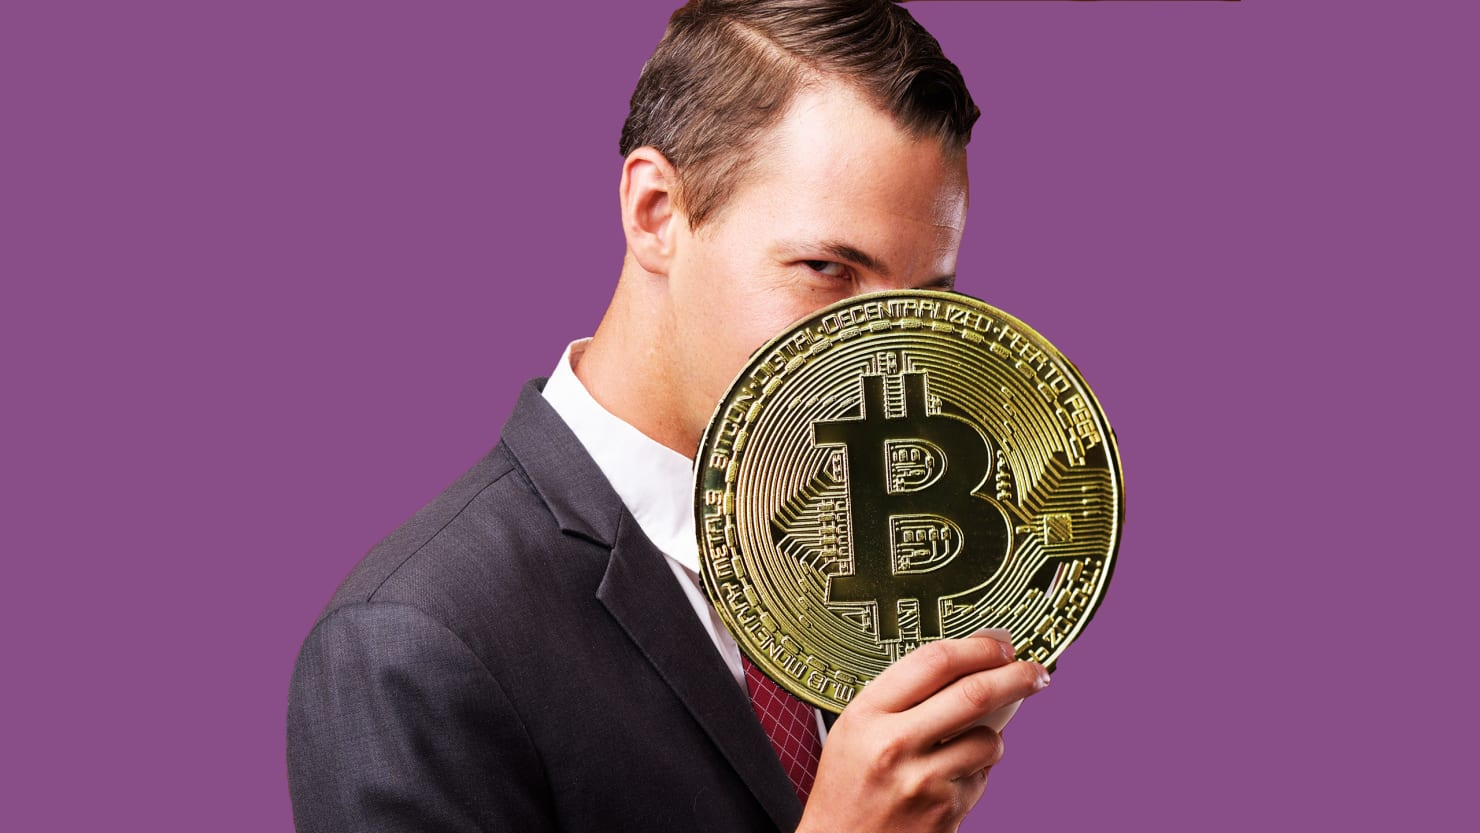 Men S Rights Activists Use Bitcoin To Hide Money From Your Future  # Hide & Seek Muebles